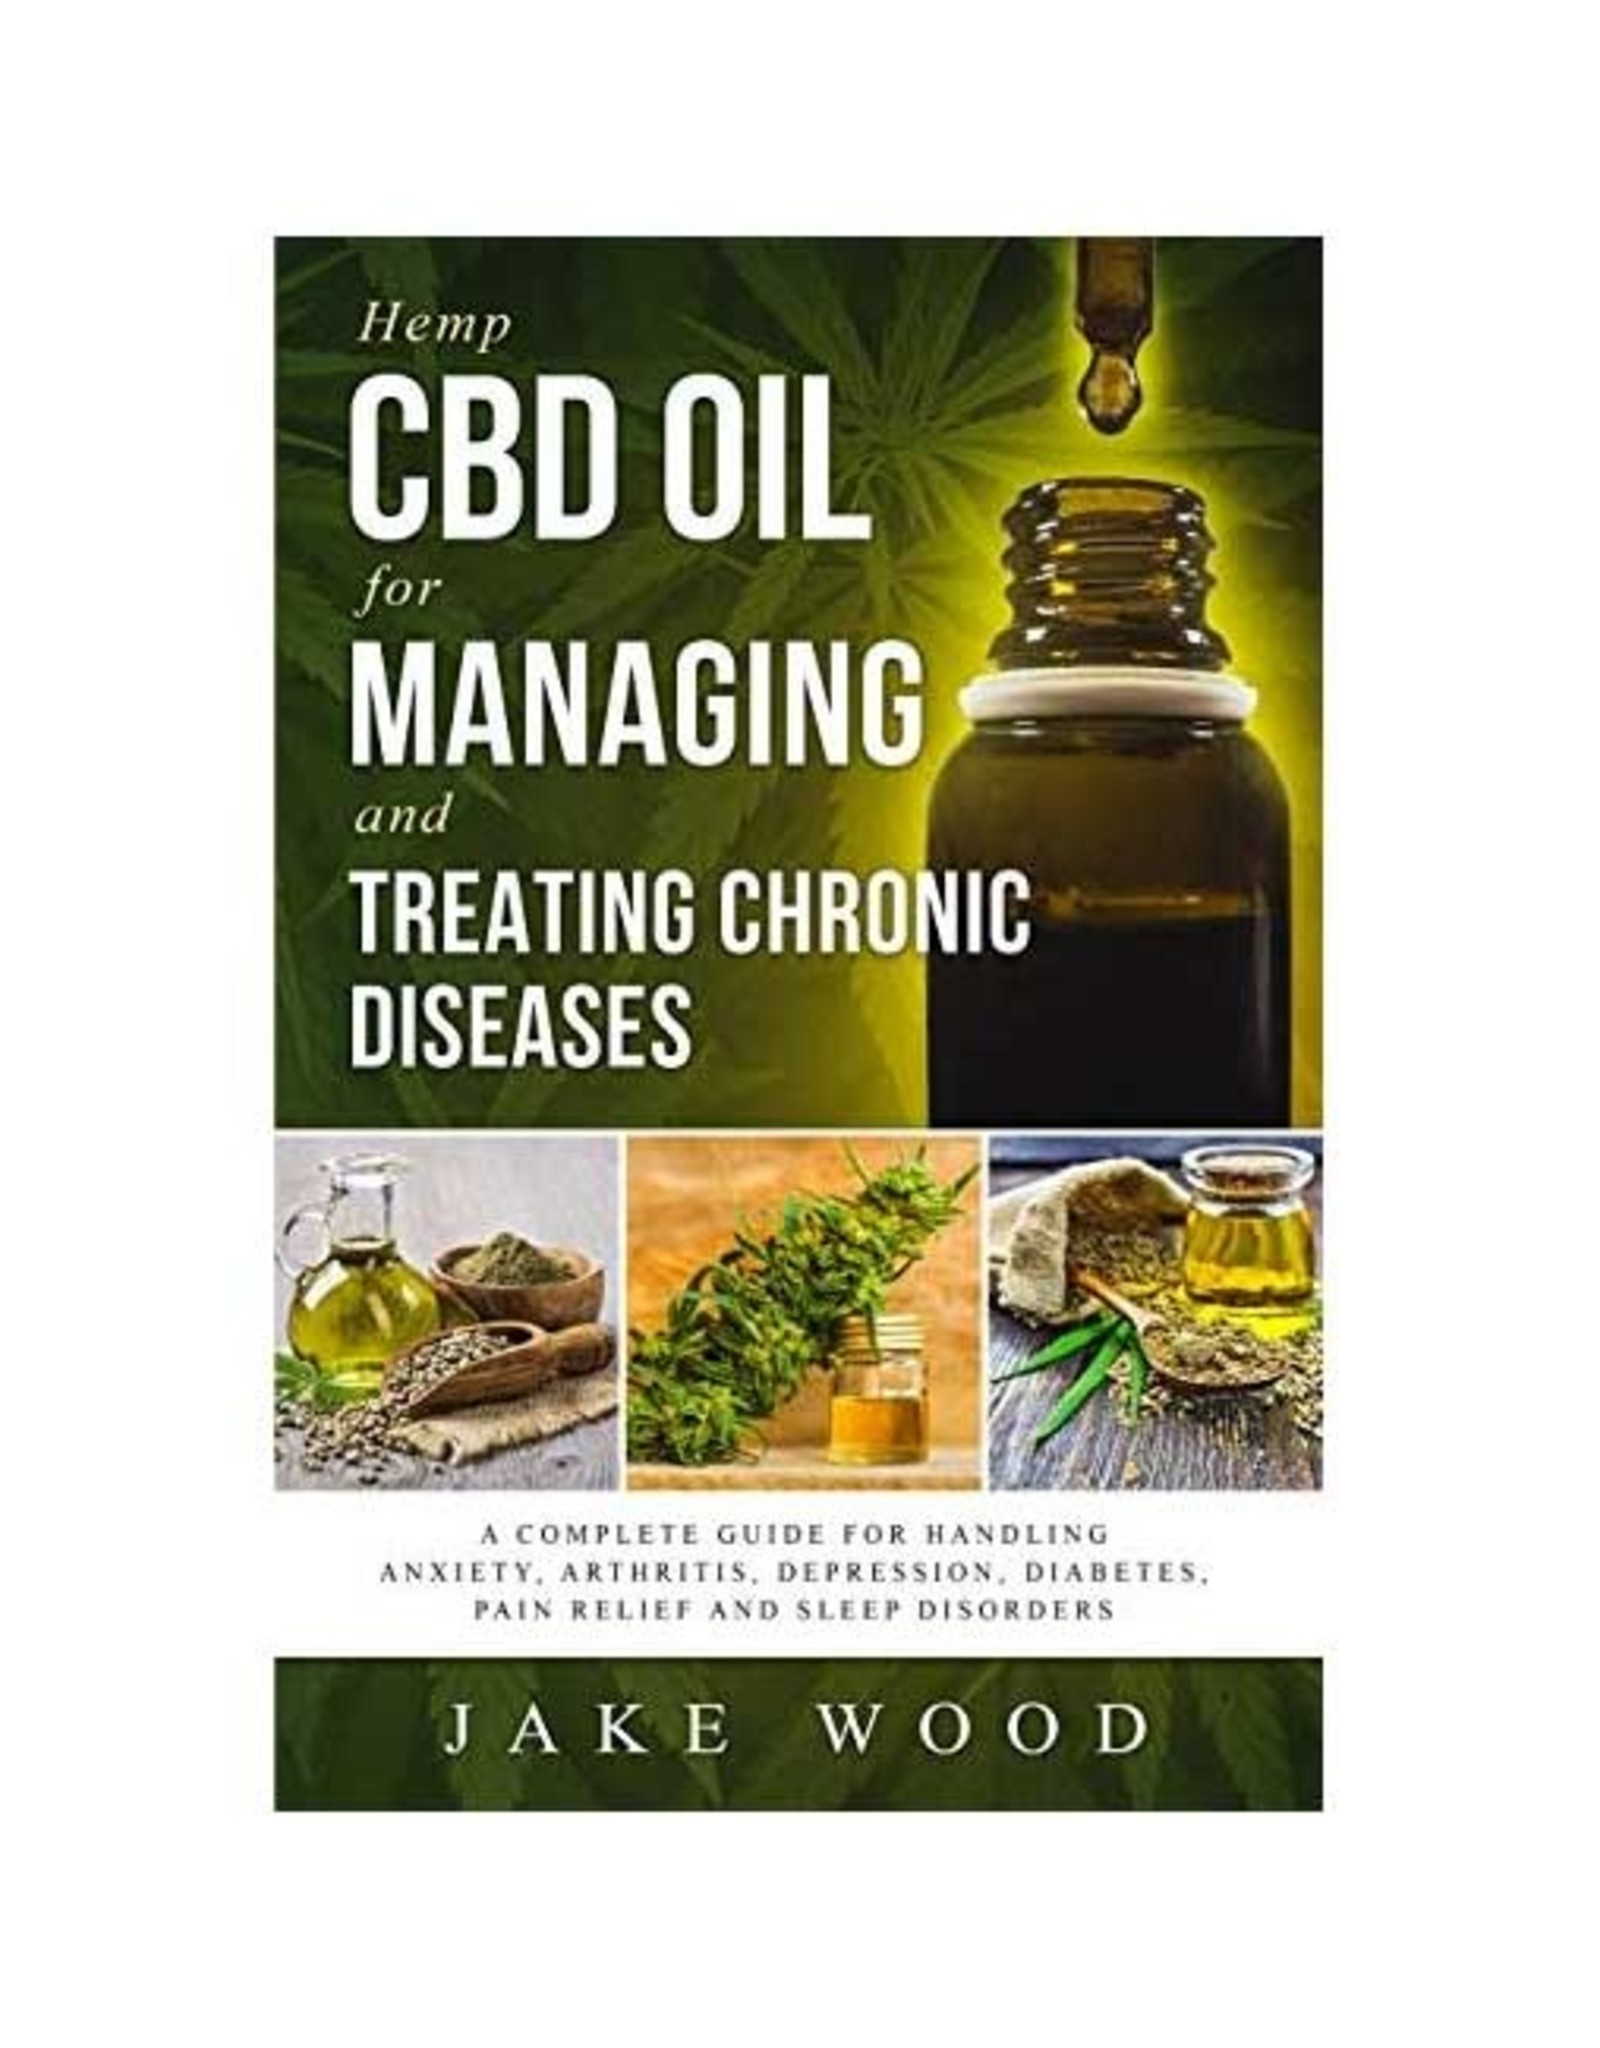 CBD Oil For Managing And Treating Chronic Disease